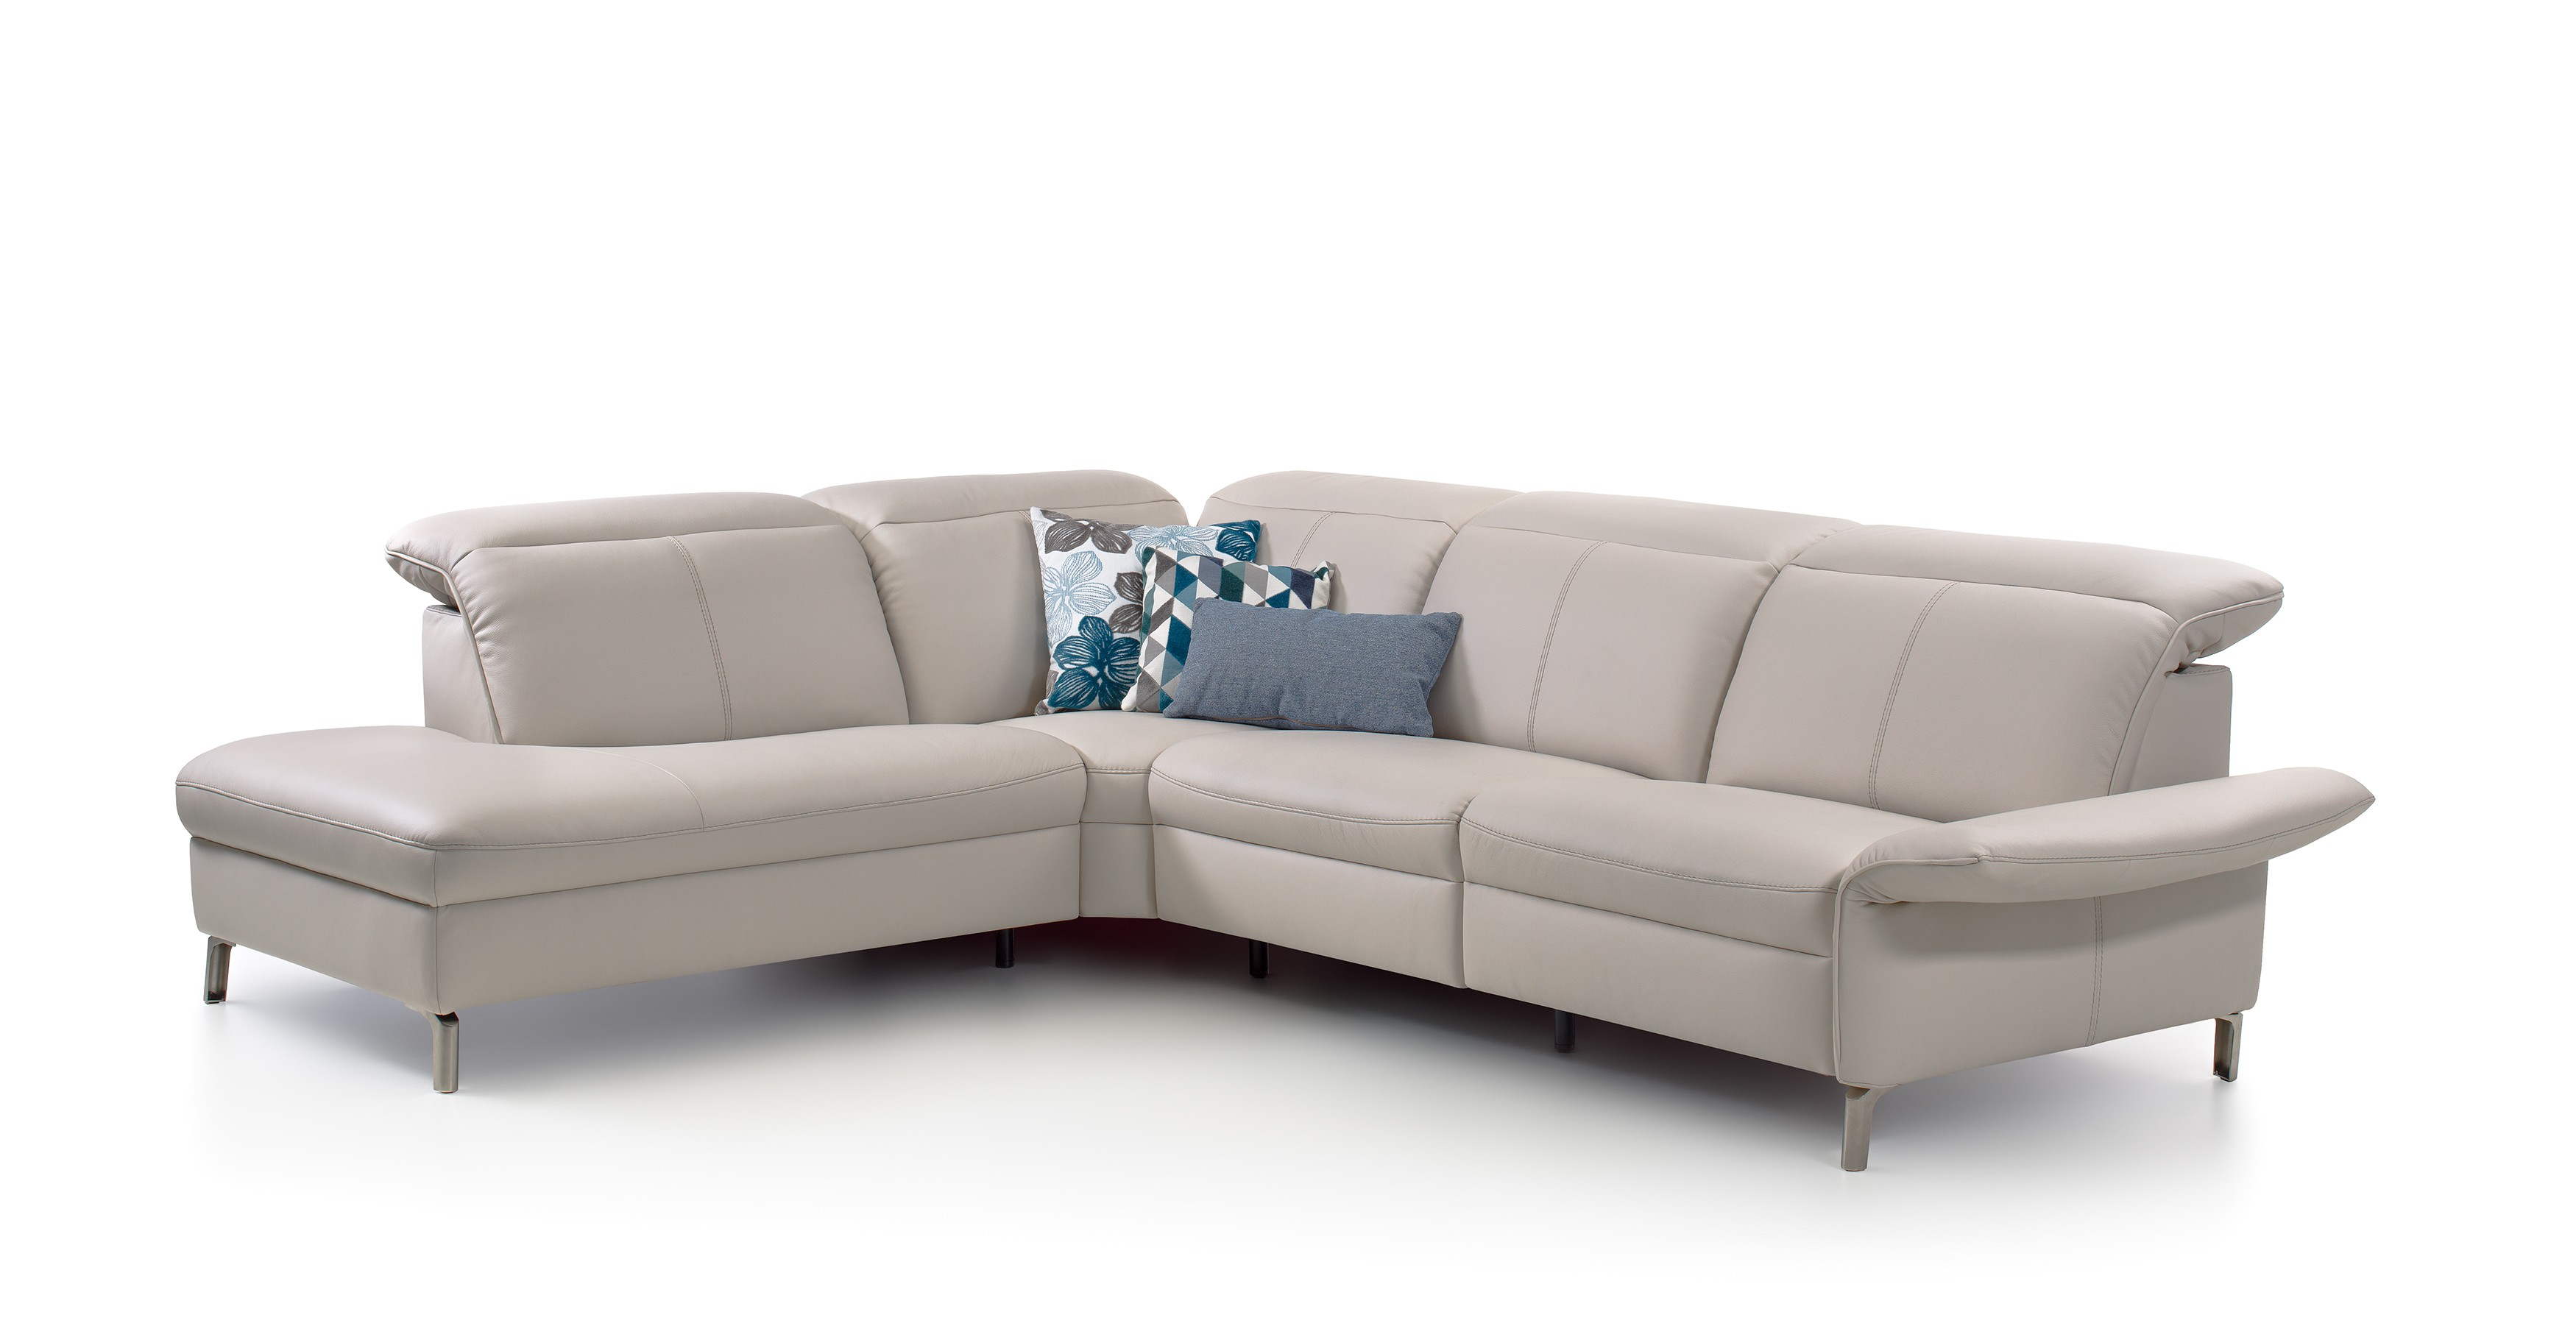 Enjoyable Juno Leather Sectional By Rom Belgium At Nova Interiors Andrewgaddart Wooden Chair Designs For Living Room Andrewgaddartcom